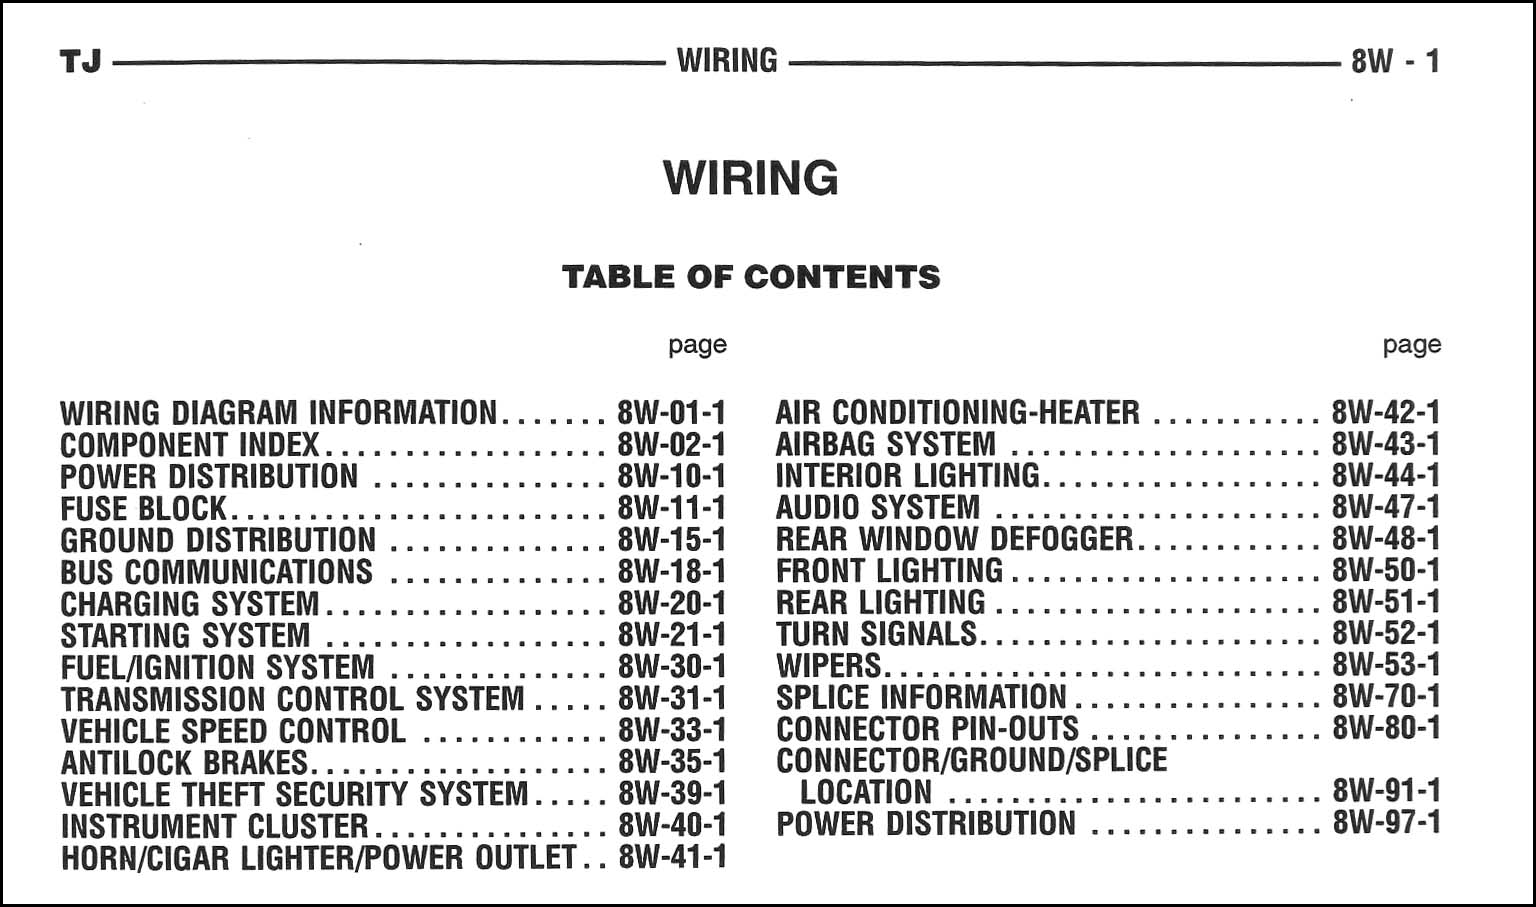 2005JeepWranglerOWD TOC?resize=665%2C393 wiring diagram for 2005 jeep wrangler readingrat net 2005 jeep wrangler stereo wiring diagram at panicattacktreatment.co